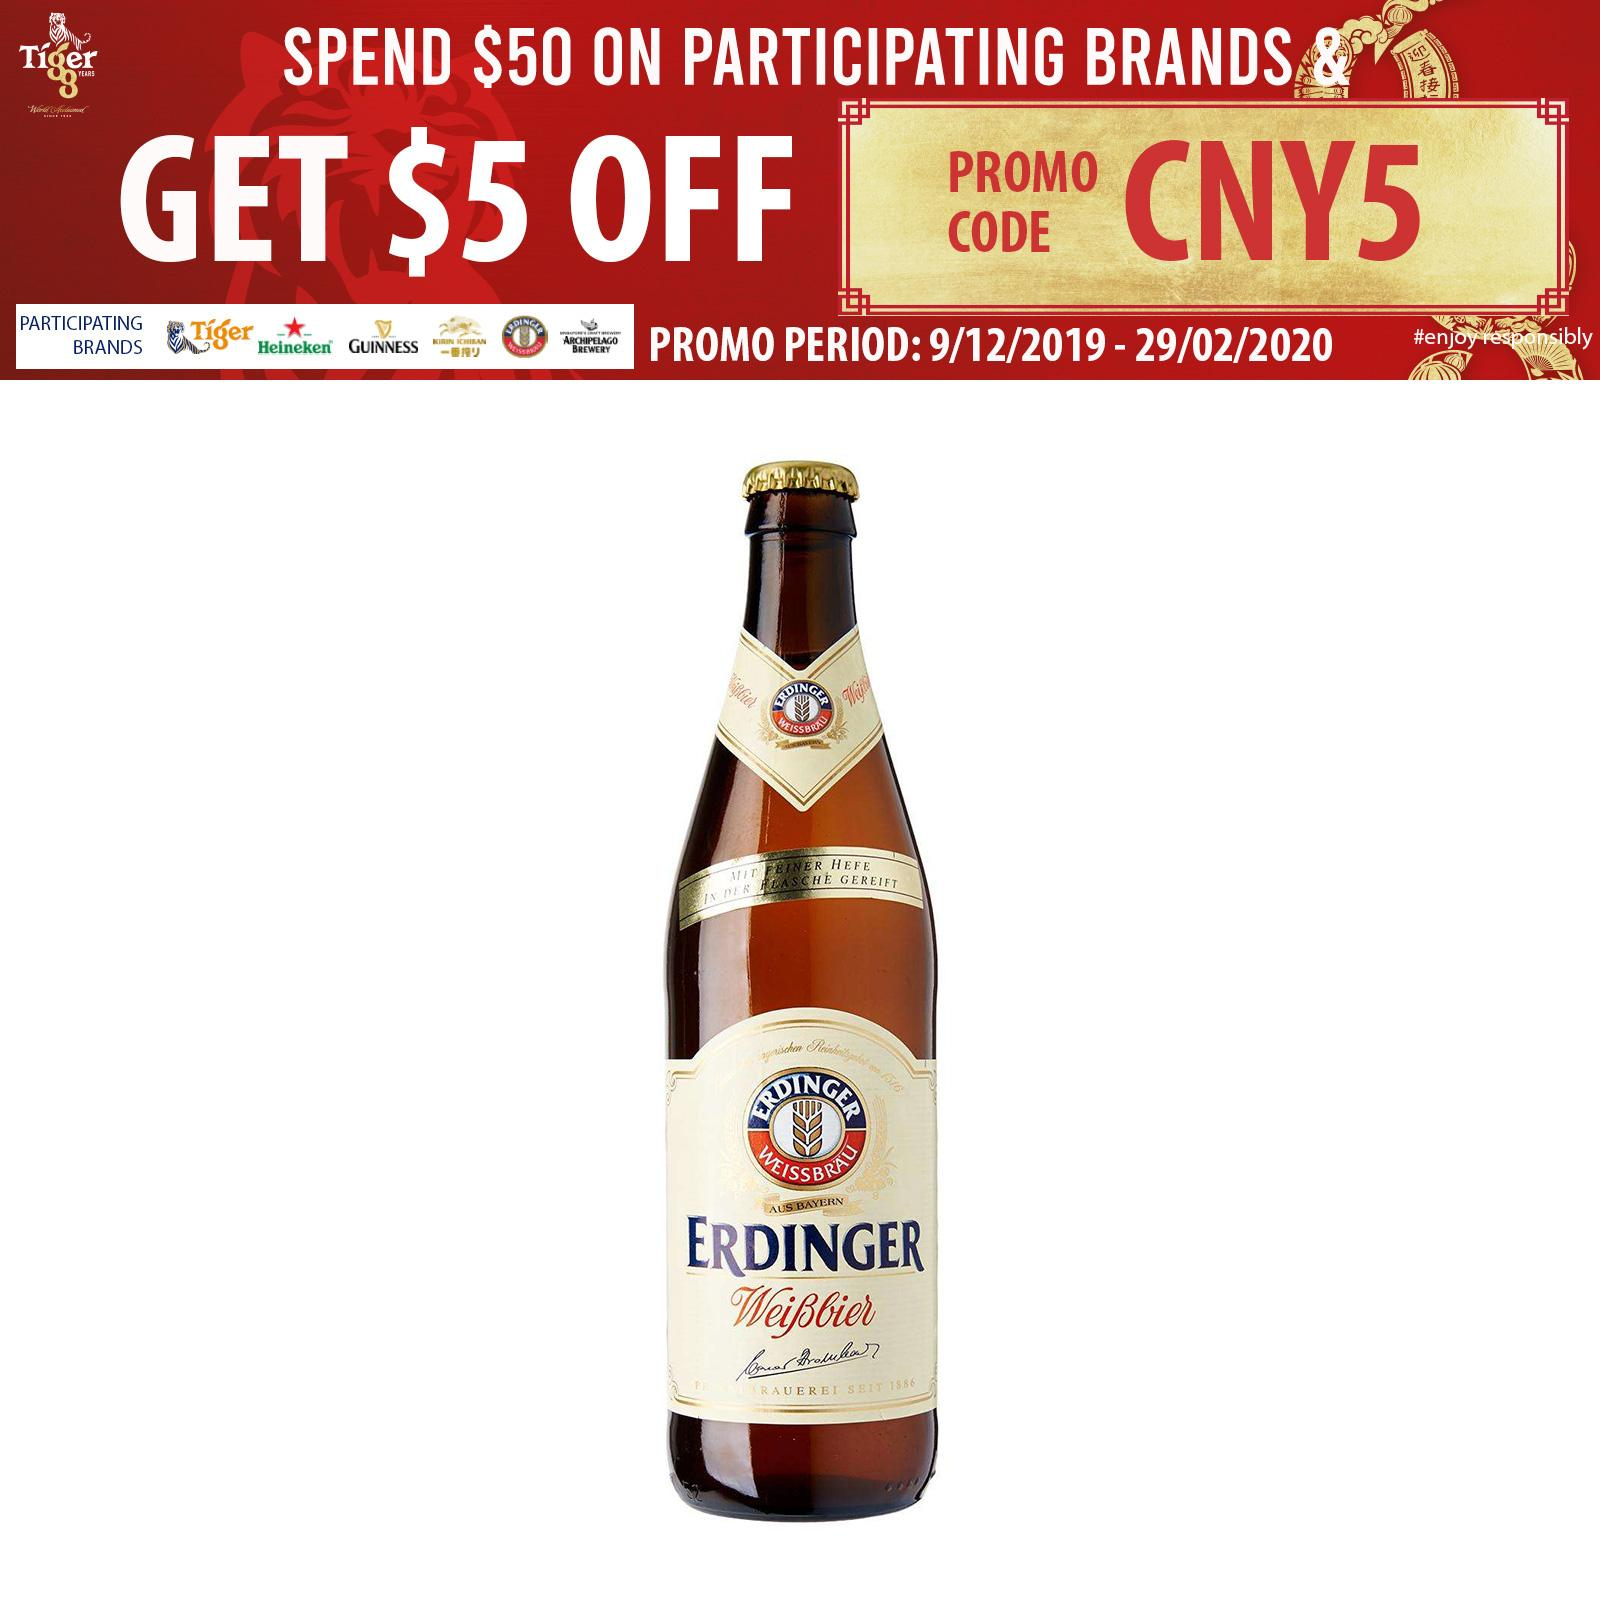 ERDINGER Weissbier White Beer Bottle 500ml